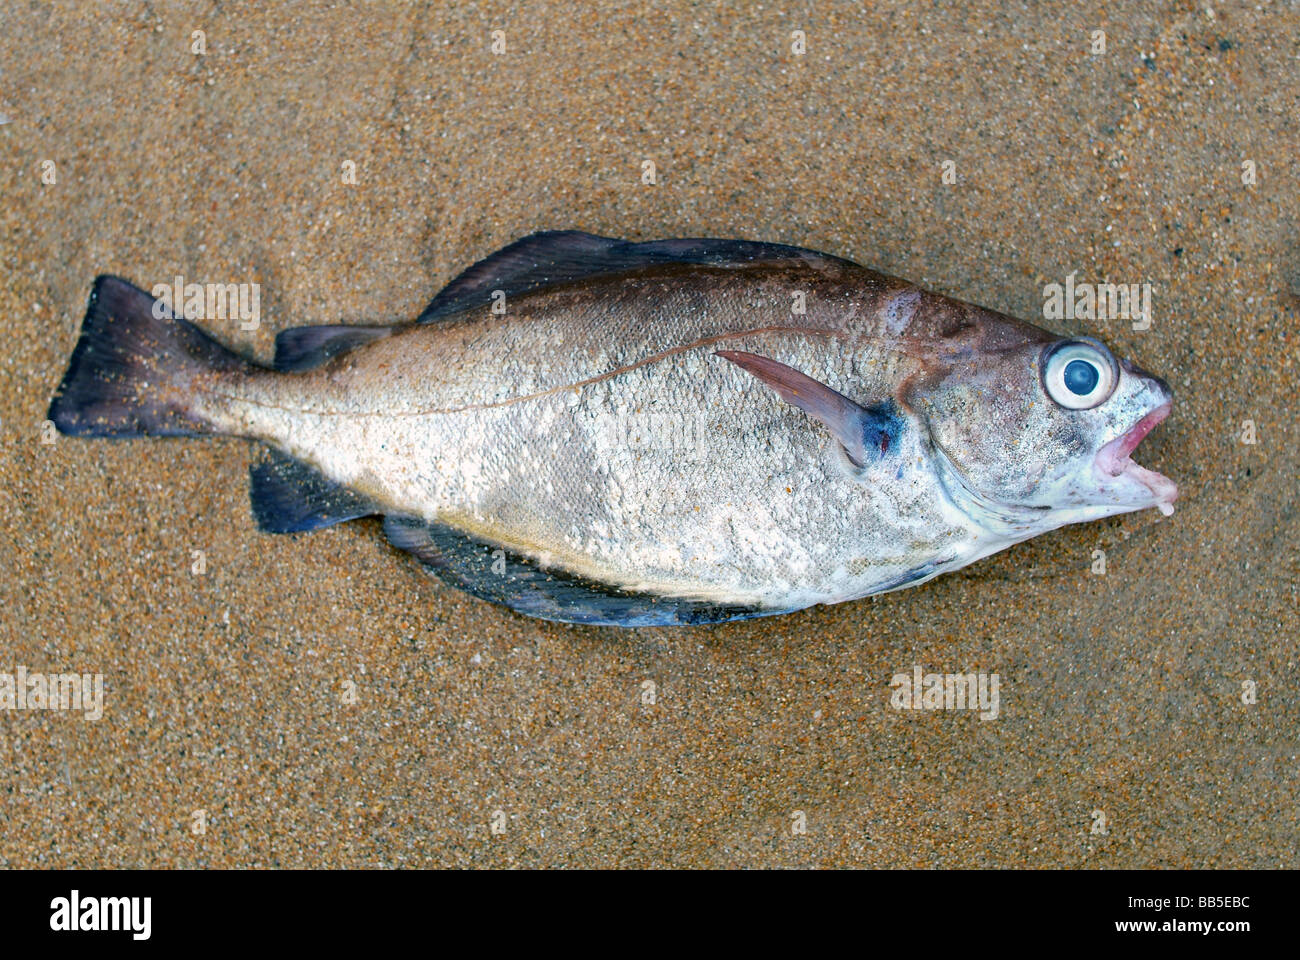 A dead fish washed up on a the sand - Stock Image